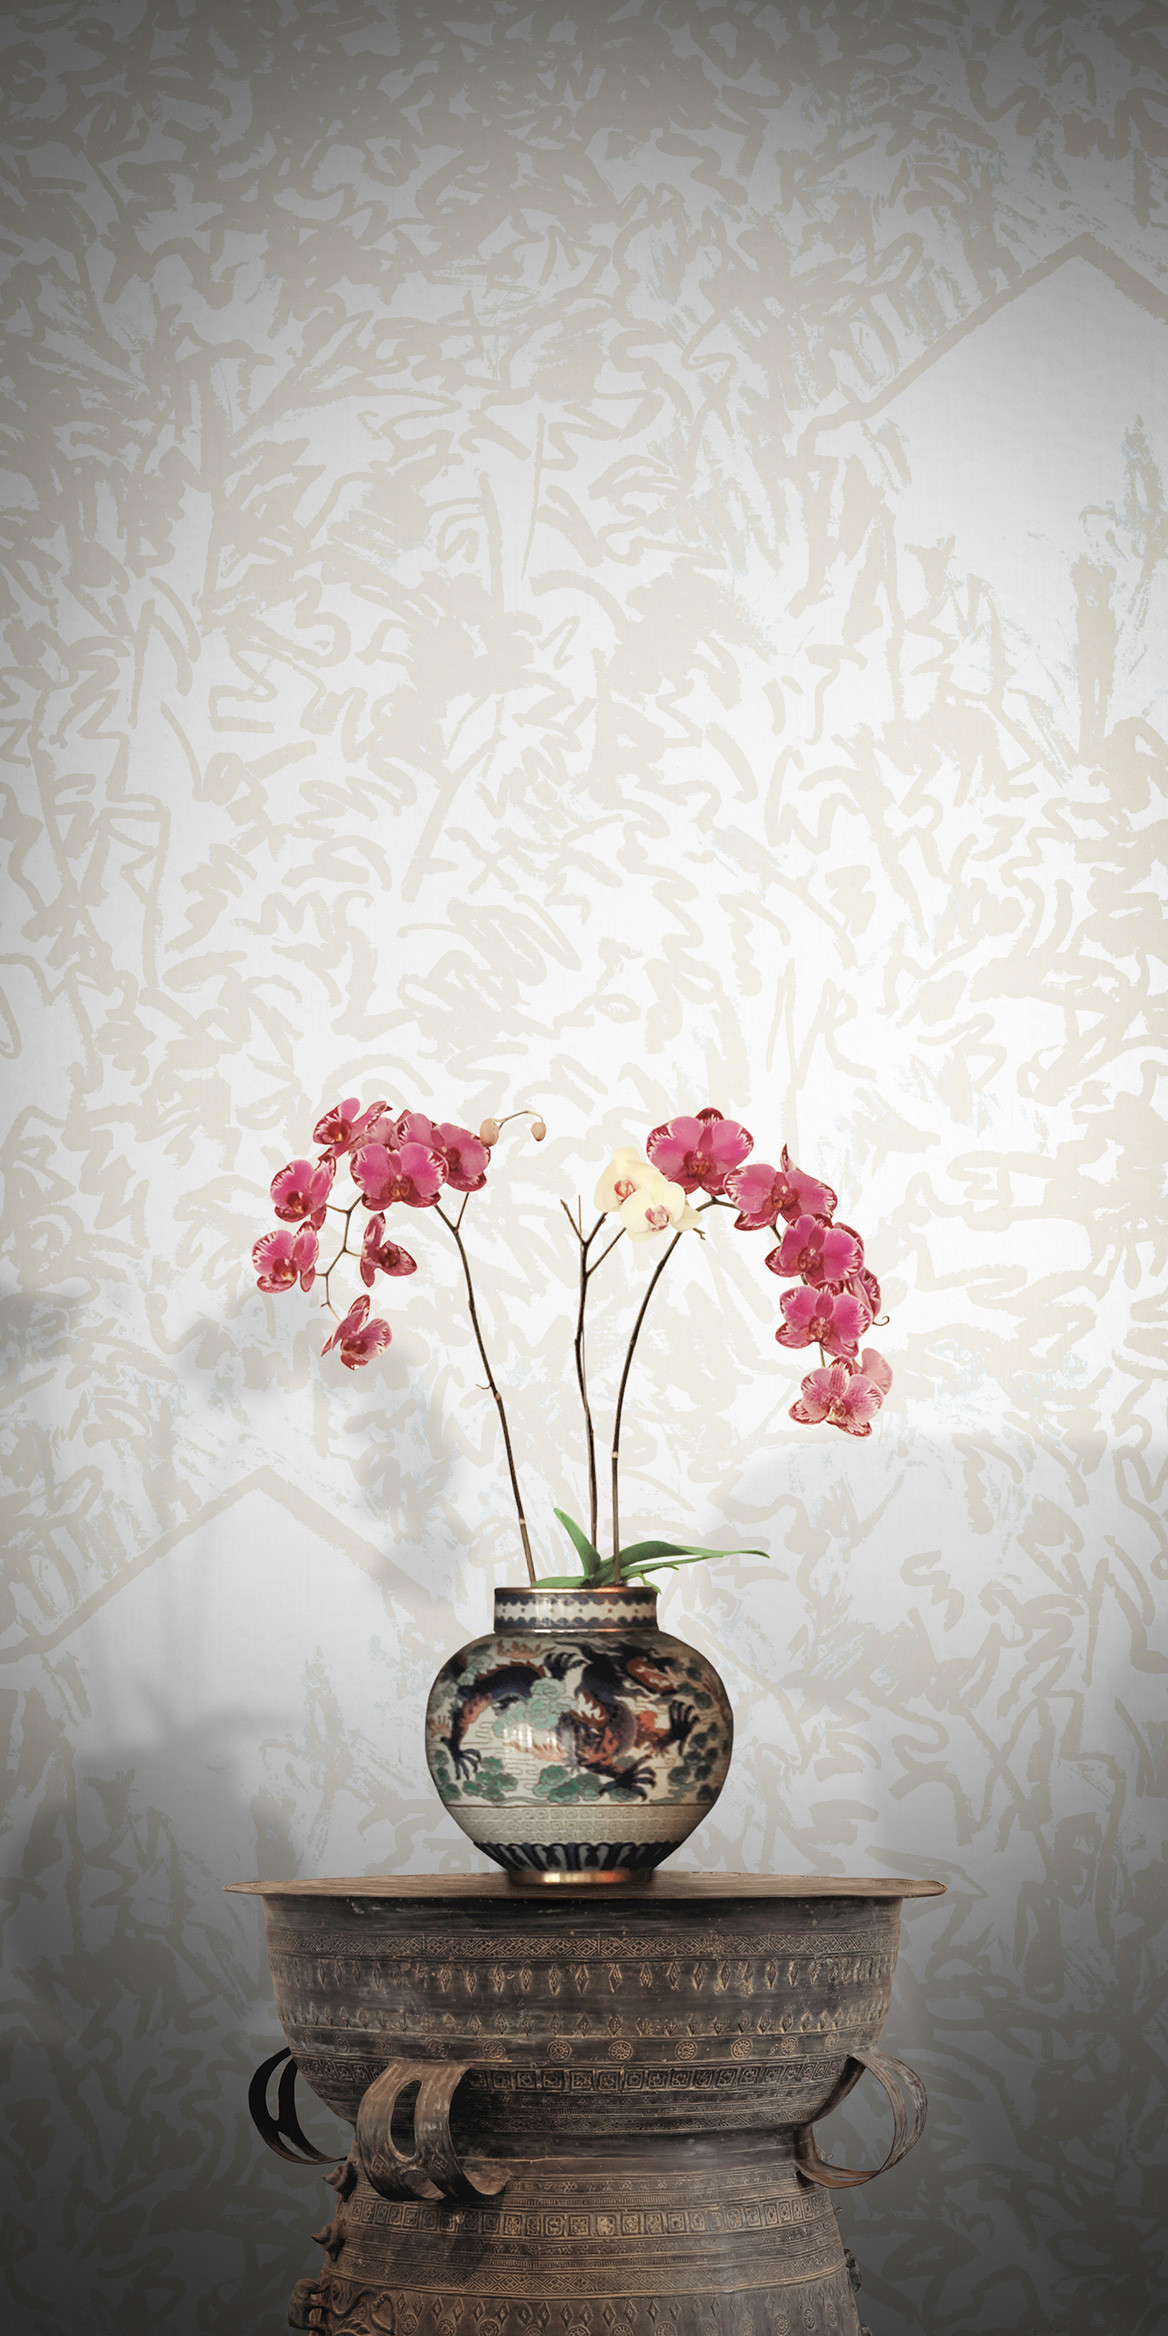 Res: 1168x2336, Check out more Feathr floral wallpapers here and get ideas how to create  stunning and elegant floral spaces.